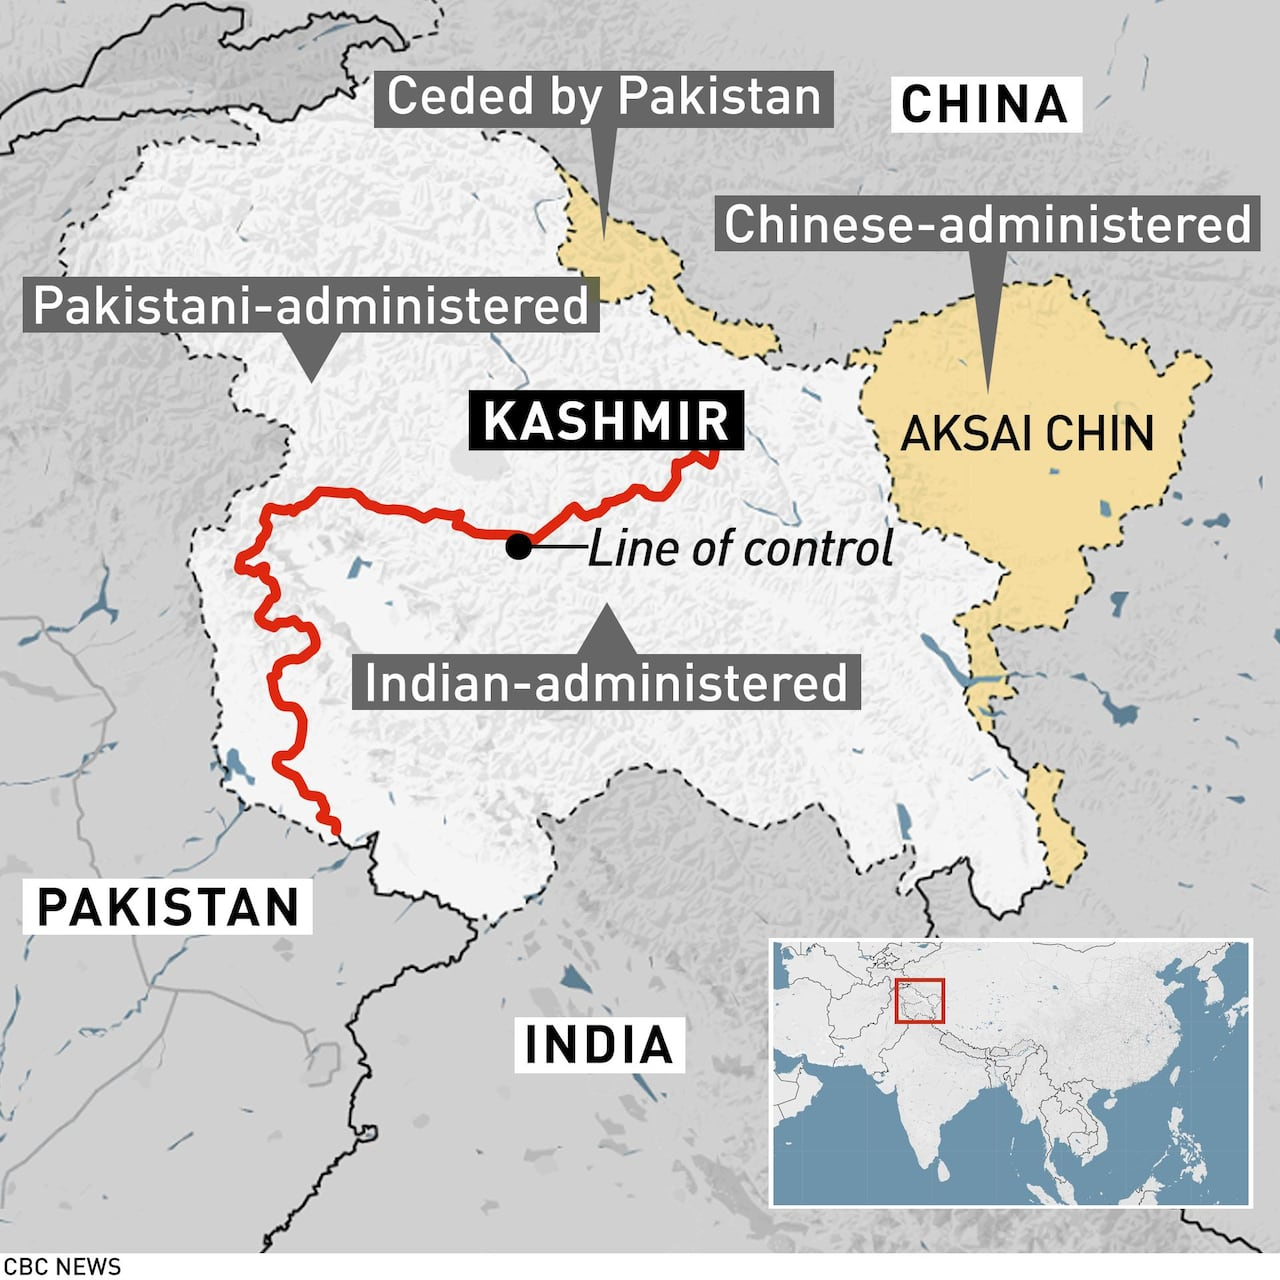 sneakers for cheap cb5ff 5a3a6 Tensions escalate, death tolls differ after India s airstrike on Pakistan  over Kashmir   CBC News